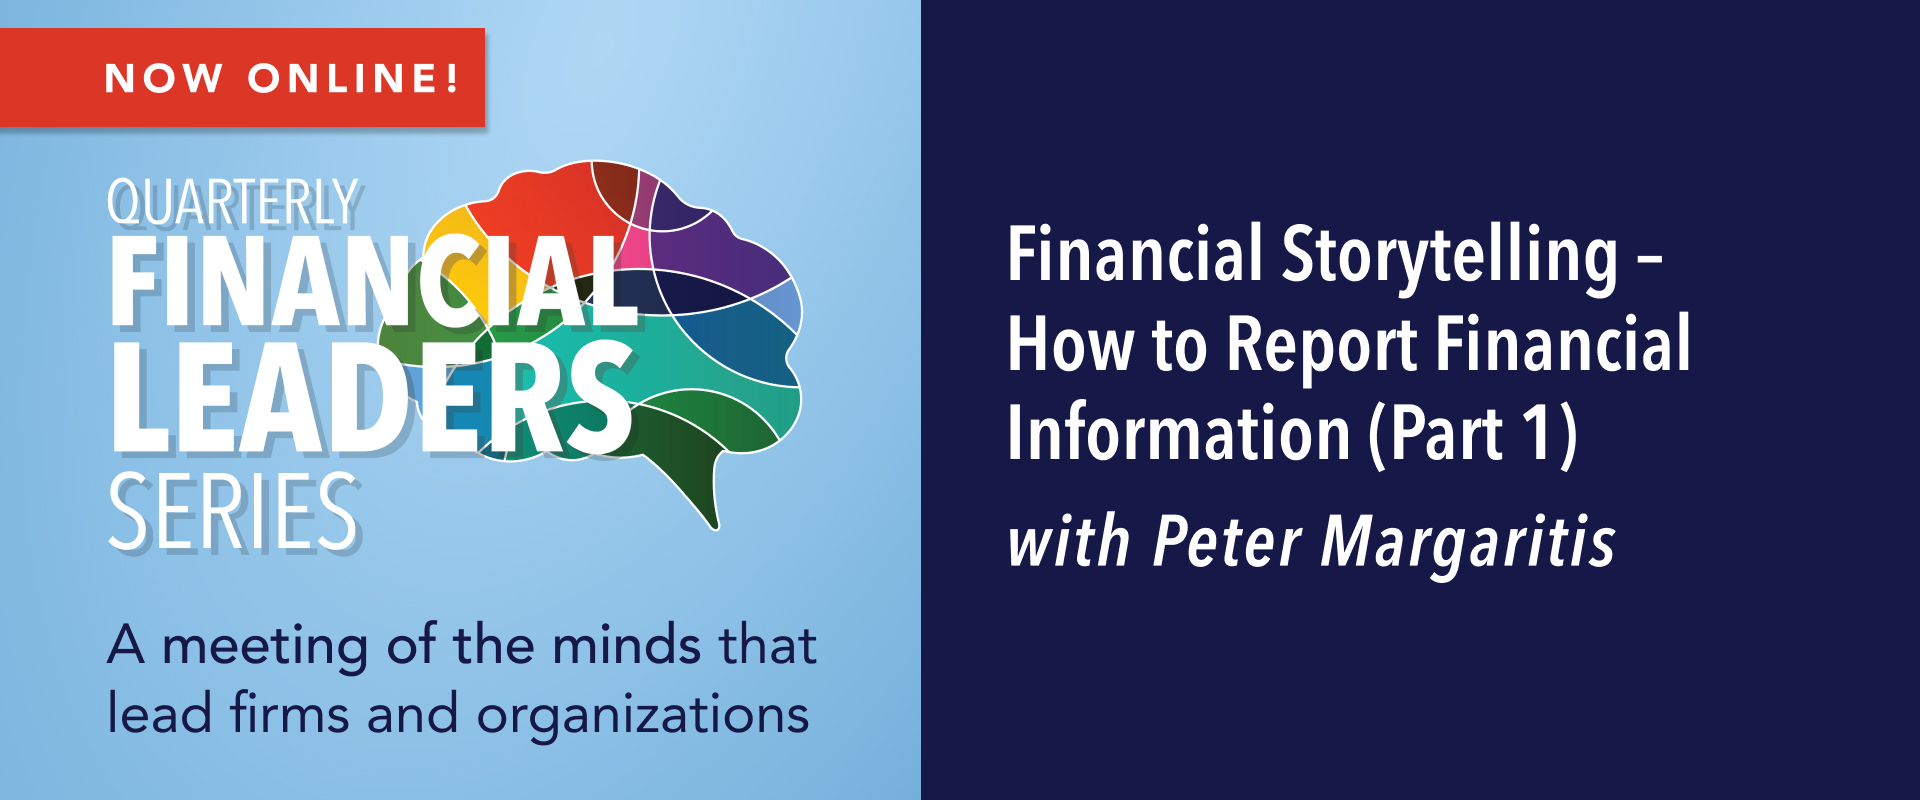 Quarterly Financial Leaders Series: Financial Storytelling – How to Report Financial Information (Part 1) (LIVE WEBCAST)